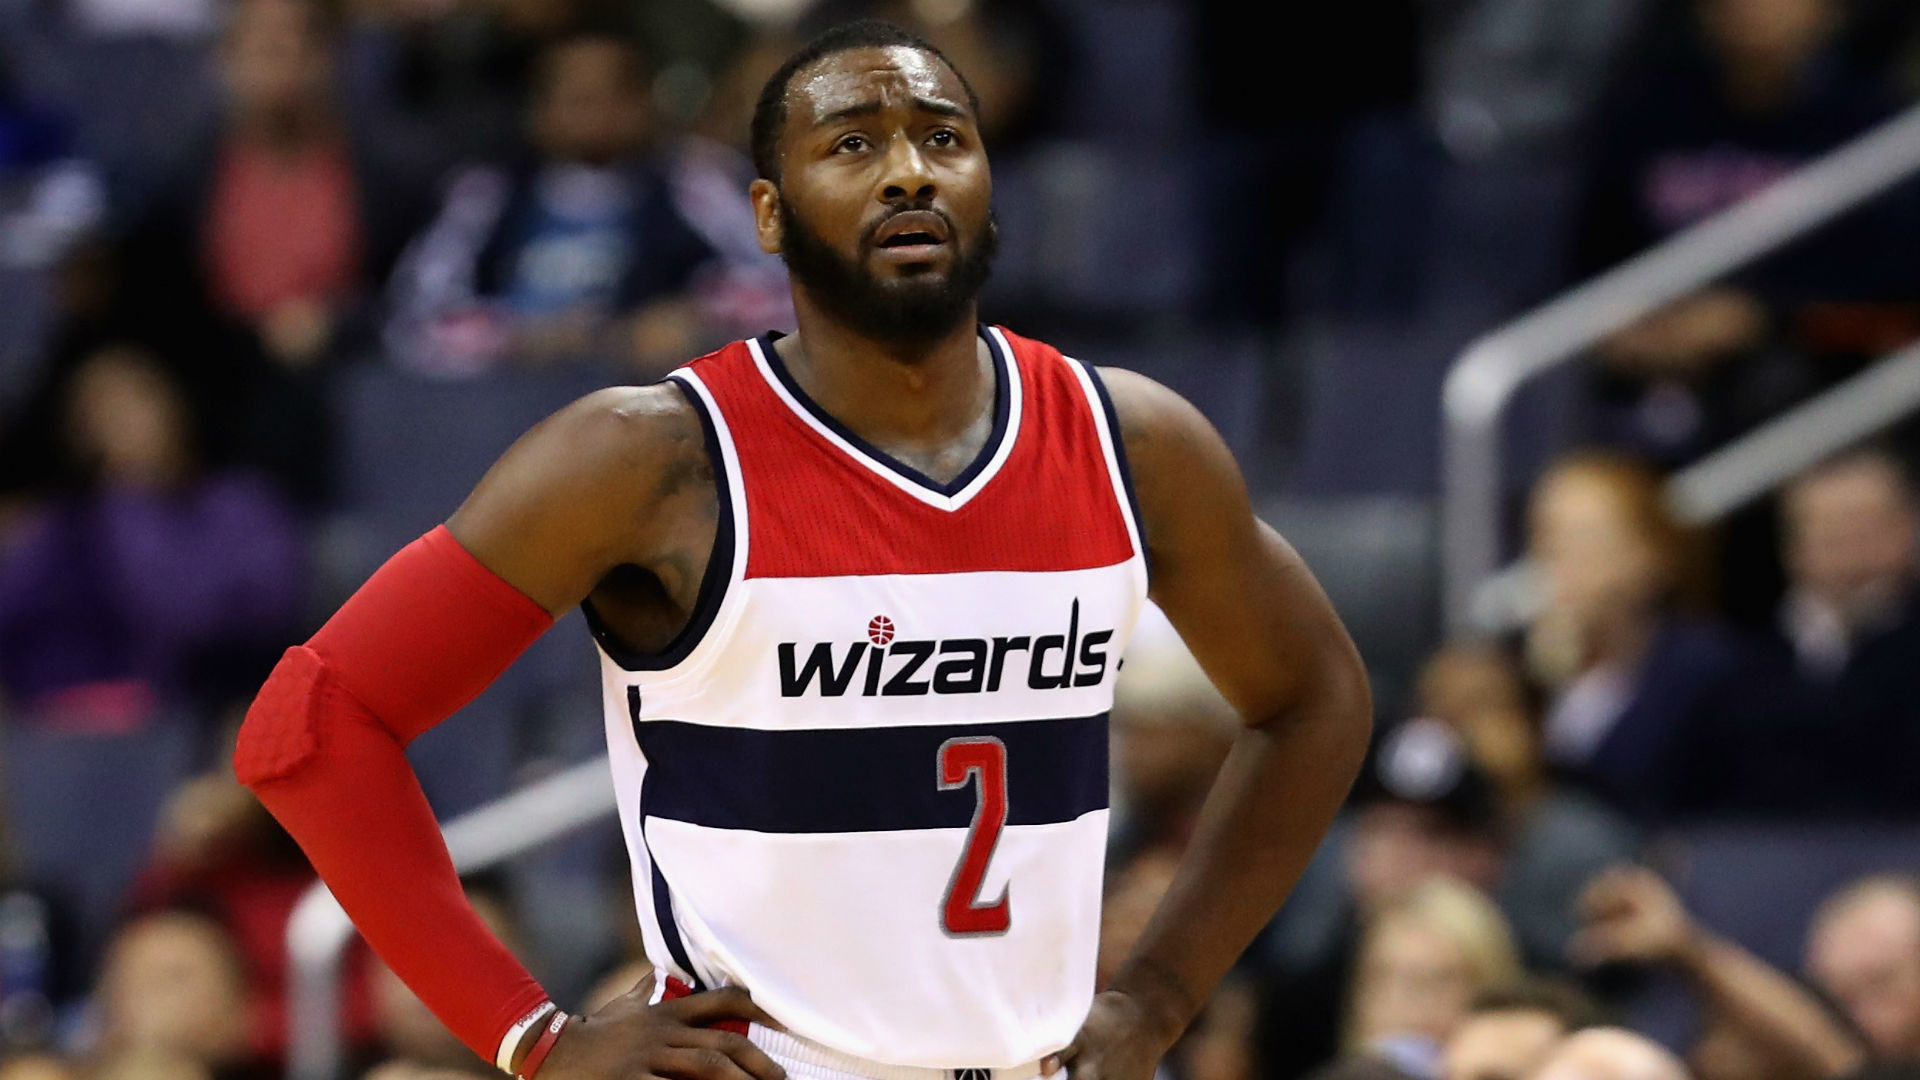 Wizards blew chance to help John Wall and themselves | NBA | Sporting News